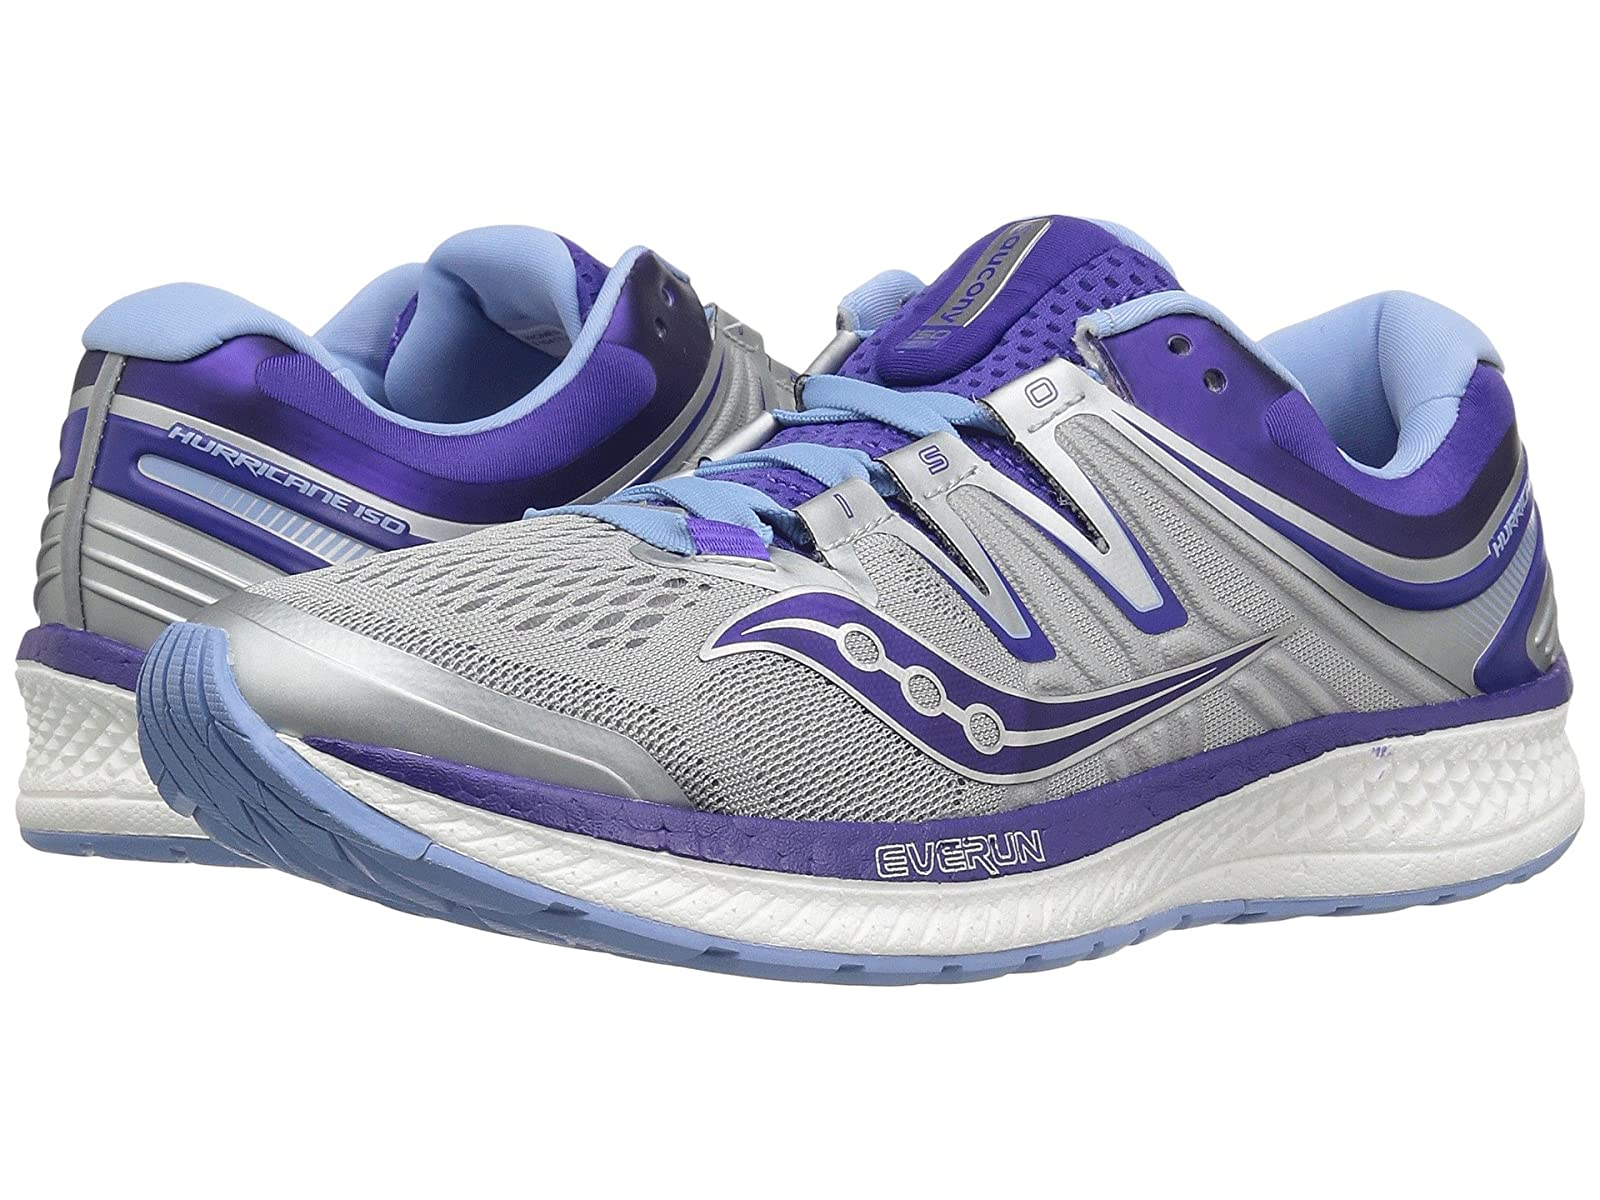 Saucony Hurricane ISO 4Atmospheric grades have affordable shoes